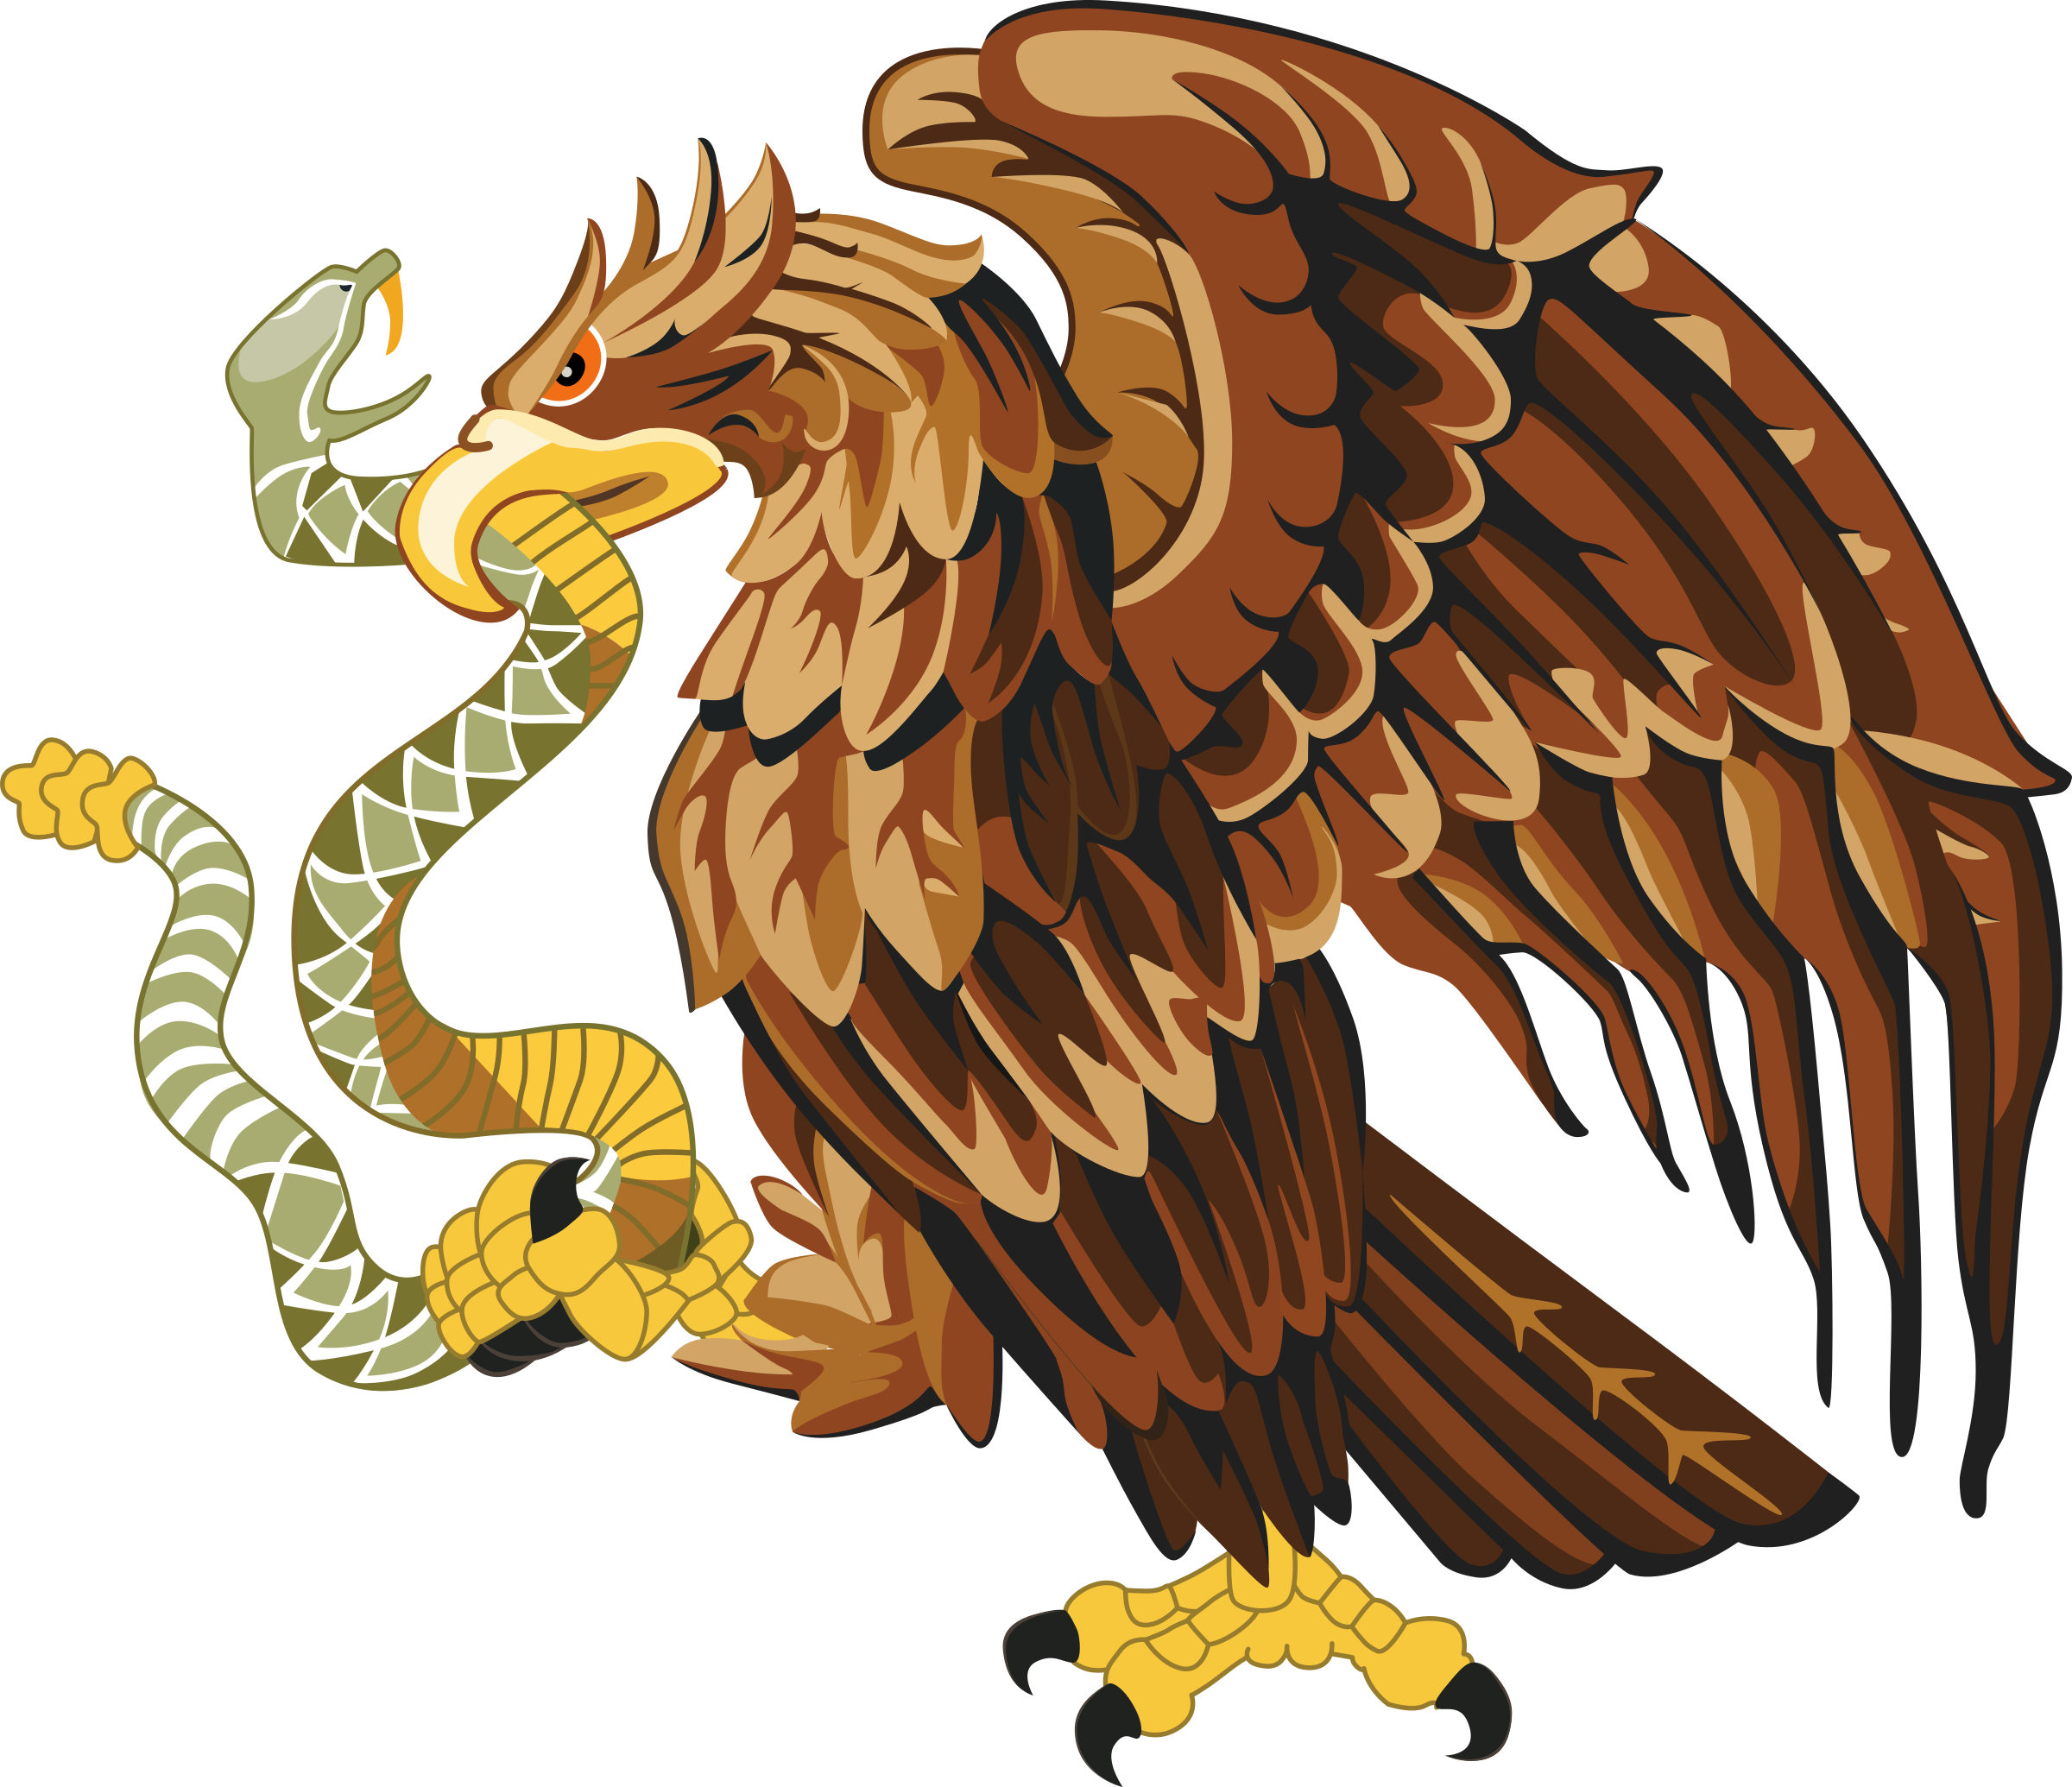 Golden eagle with big. Snake clipart brown snake